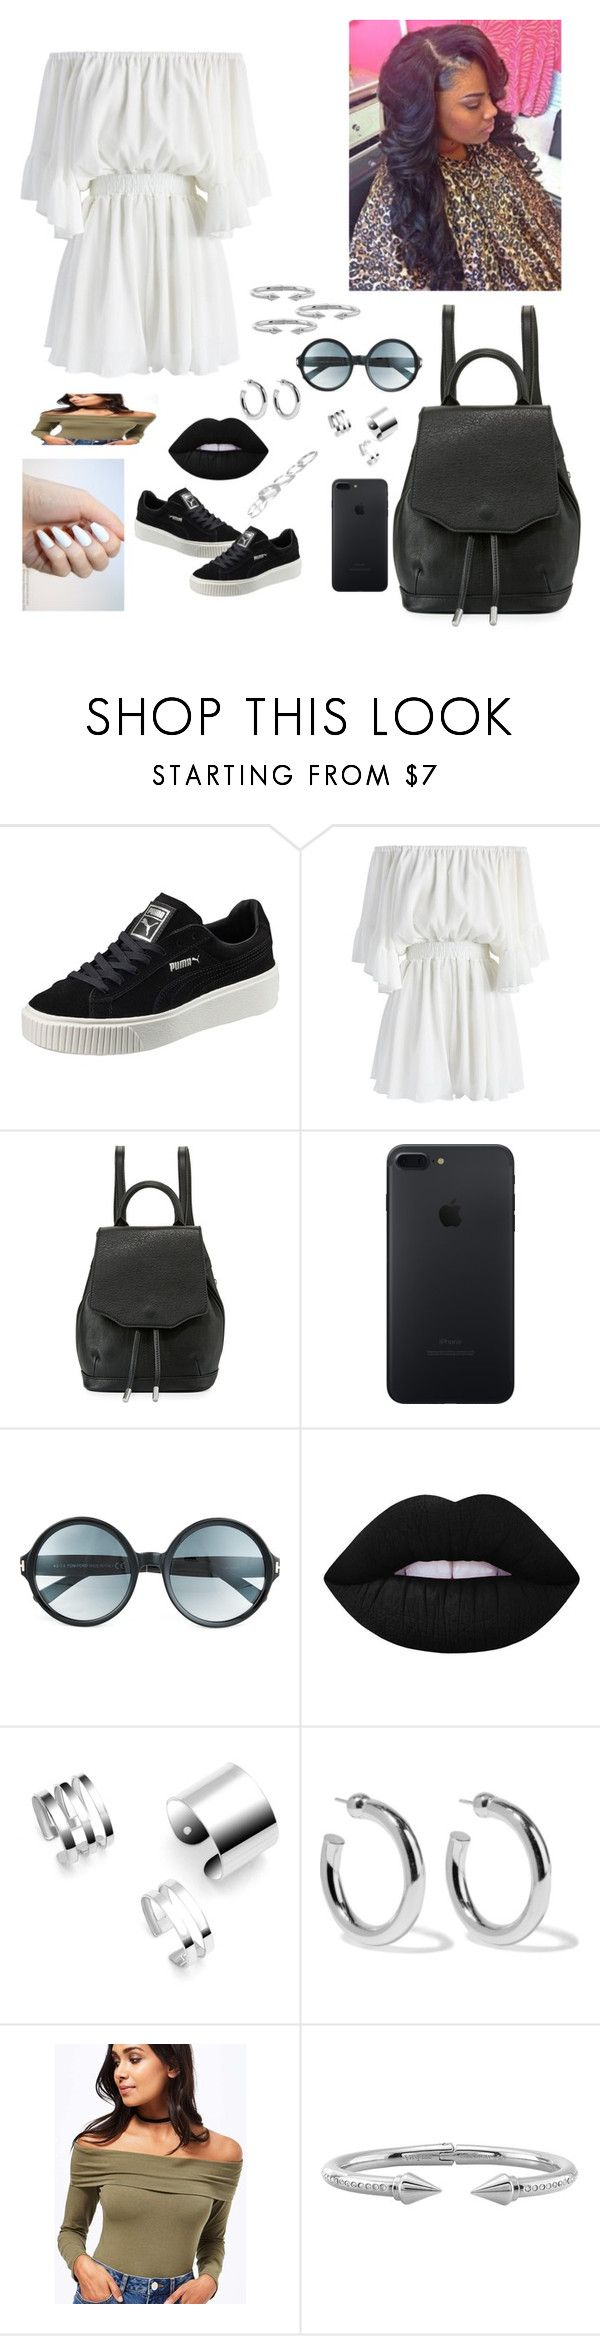 """T.Guide"" by designer-caldo ❤ liked on Polyvore featuring Puma, Chicwish, rag & bone, Tom Ford, Lime Crime, Sophie Buhai, Miss Selfridge, Vita Fede and Kendra Scott"